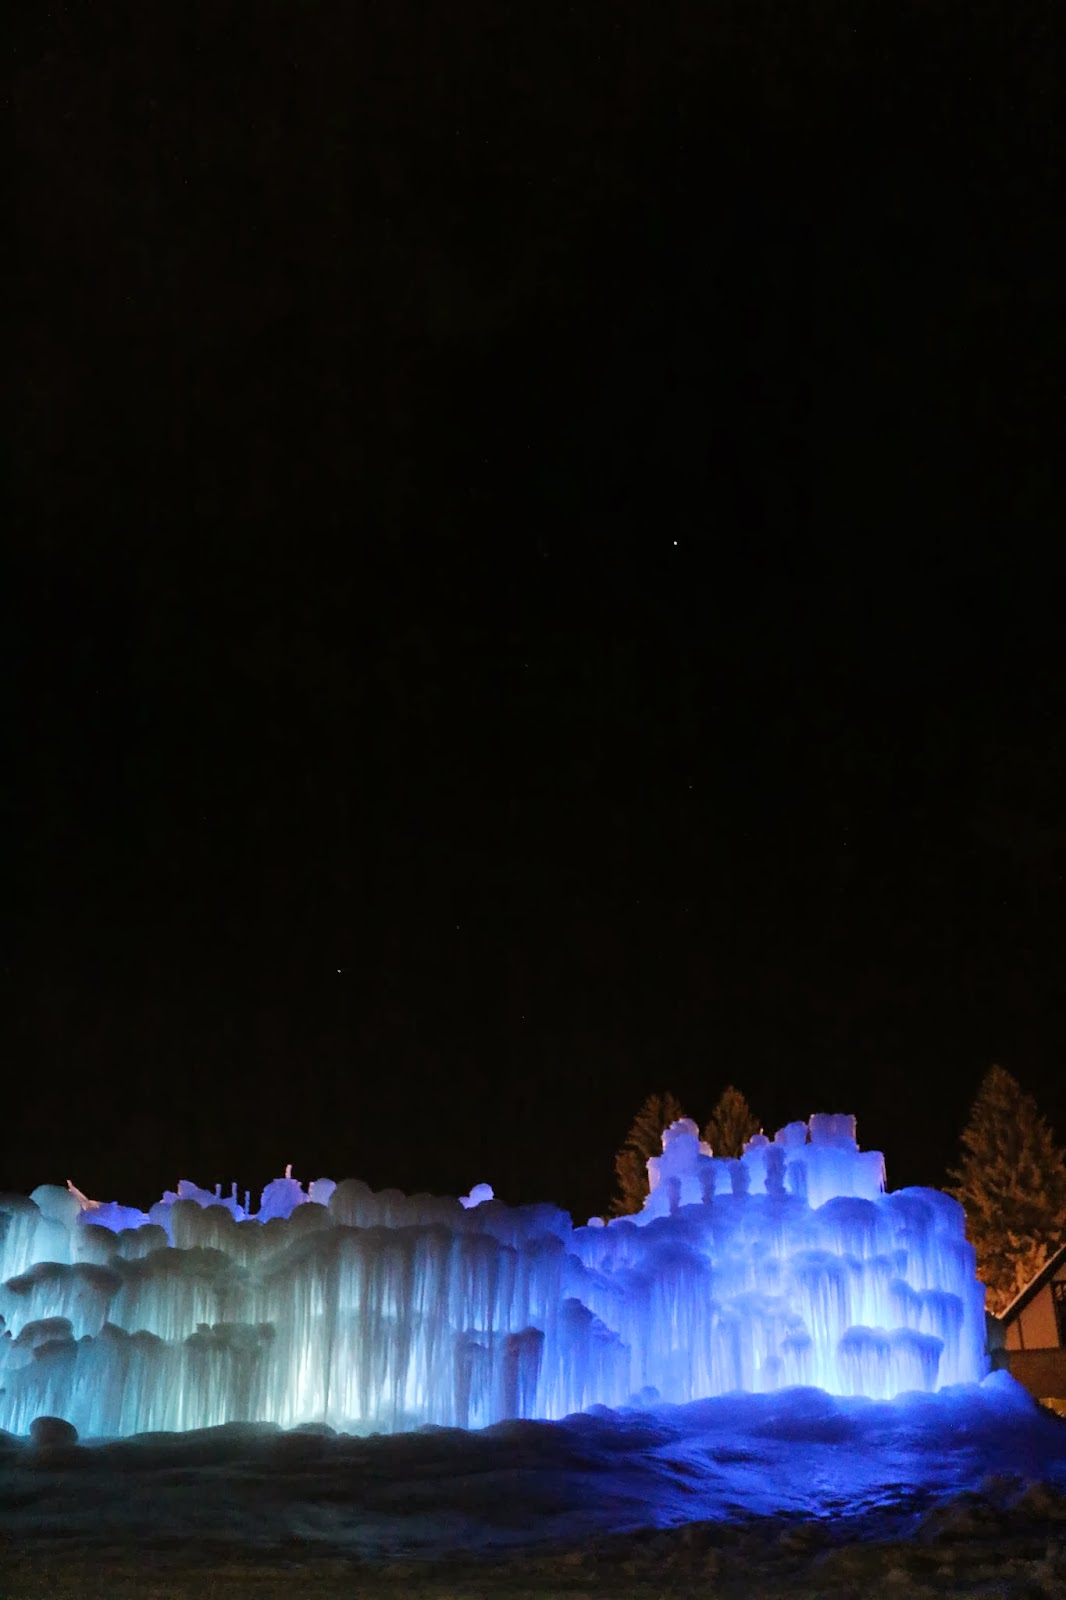 Midway Ice Castle, Utah - The Redd Party